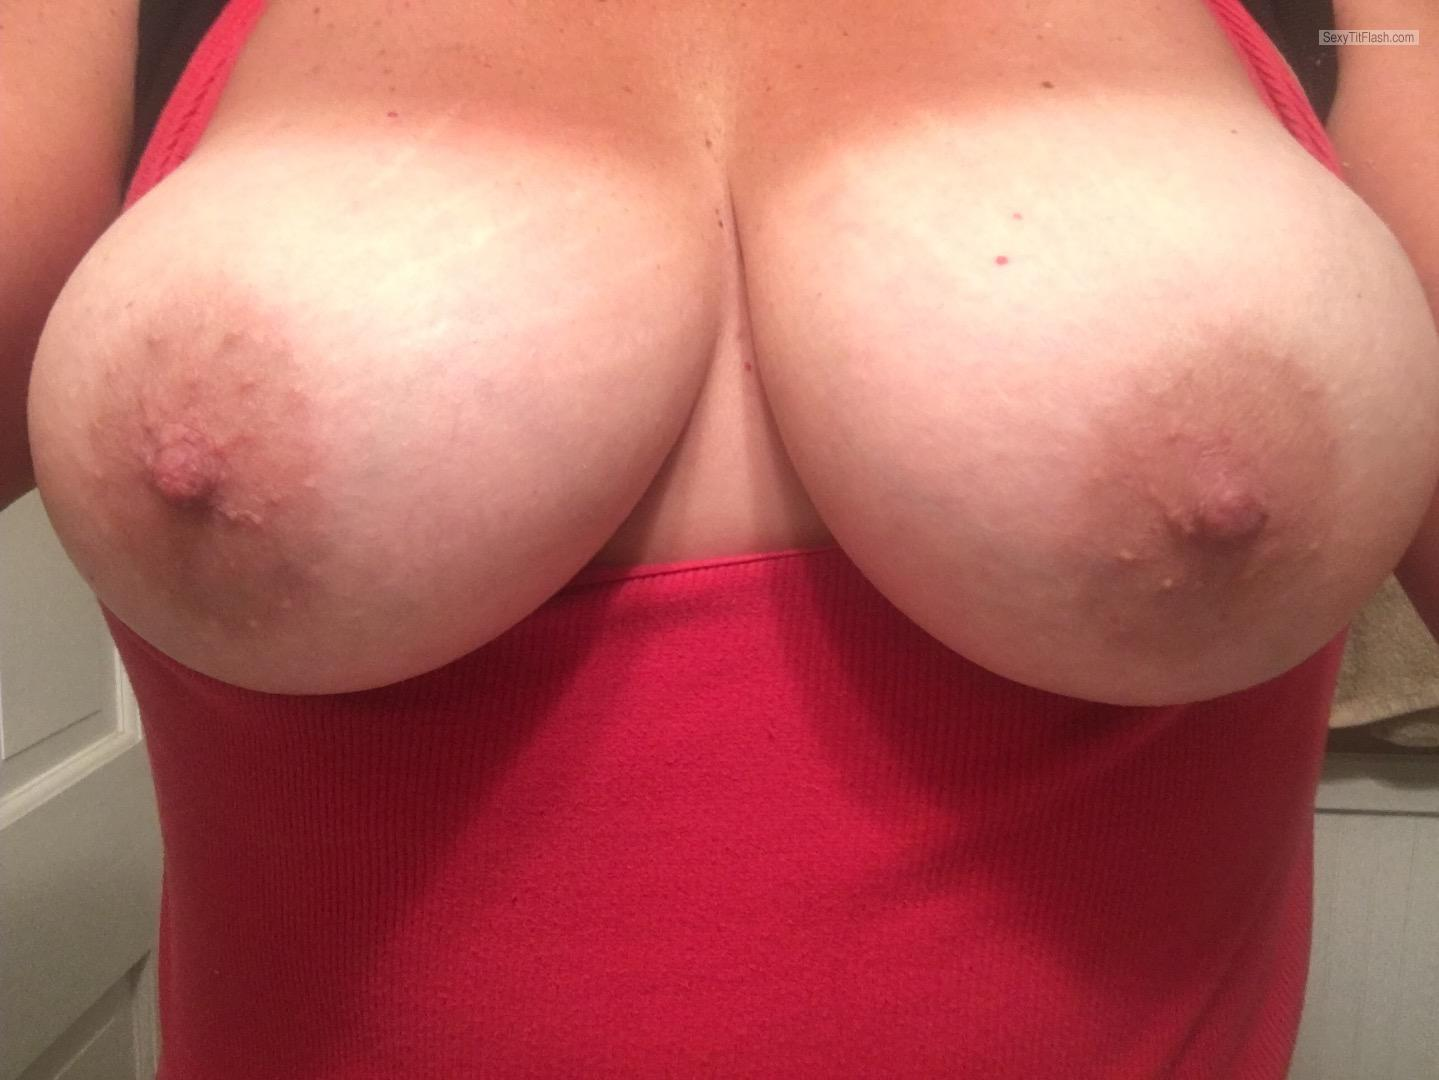 Tit Flash: My Tanlined Big Tits (Selfie) - Shan from United States